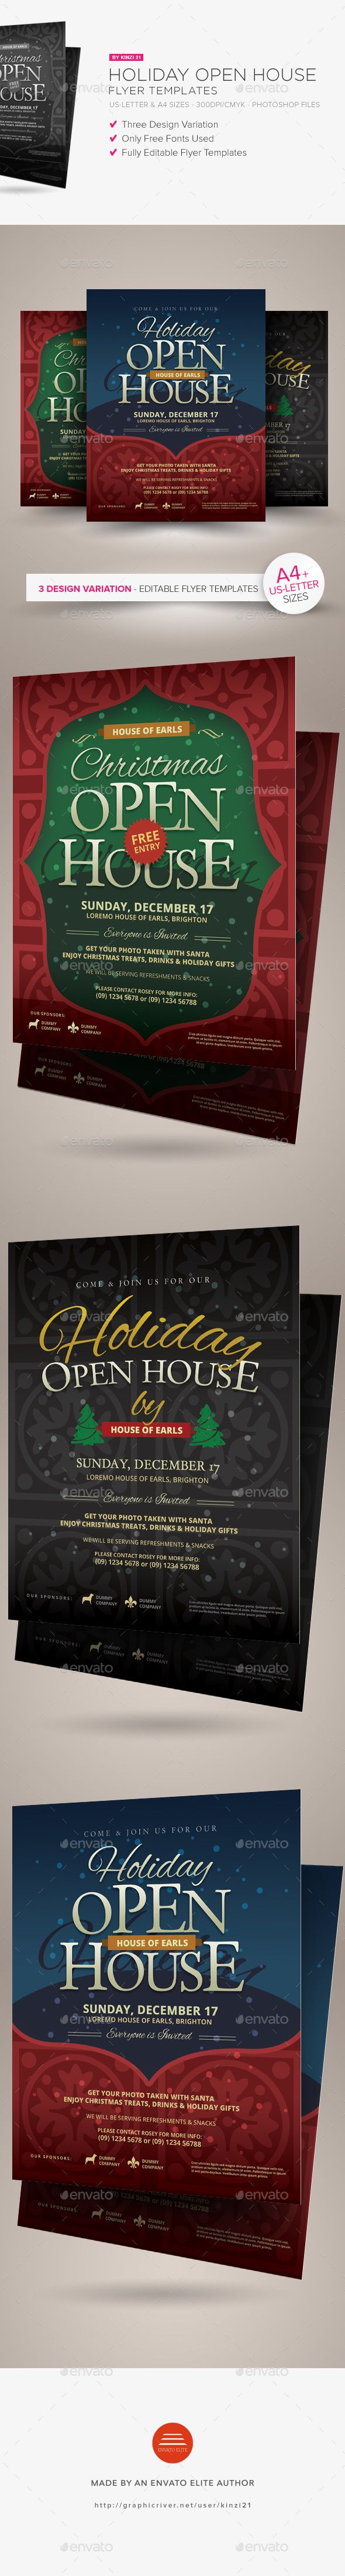 Holiday Open House Flyer Templates Flyer Template Open House And